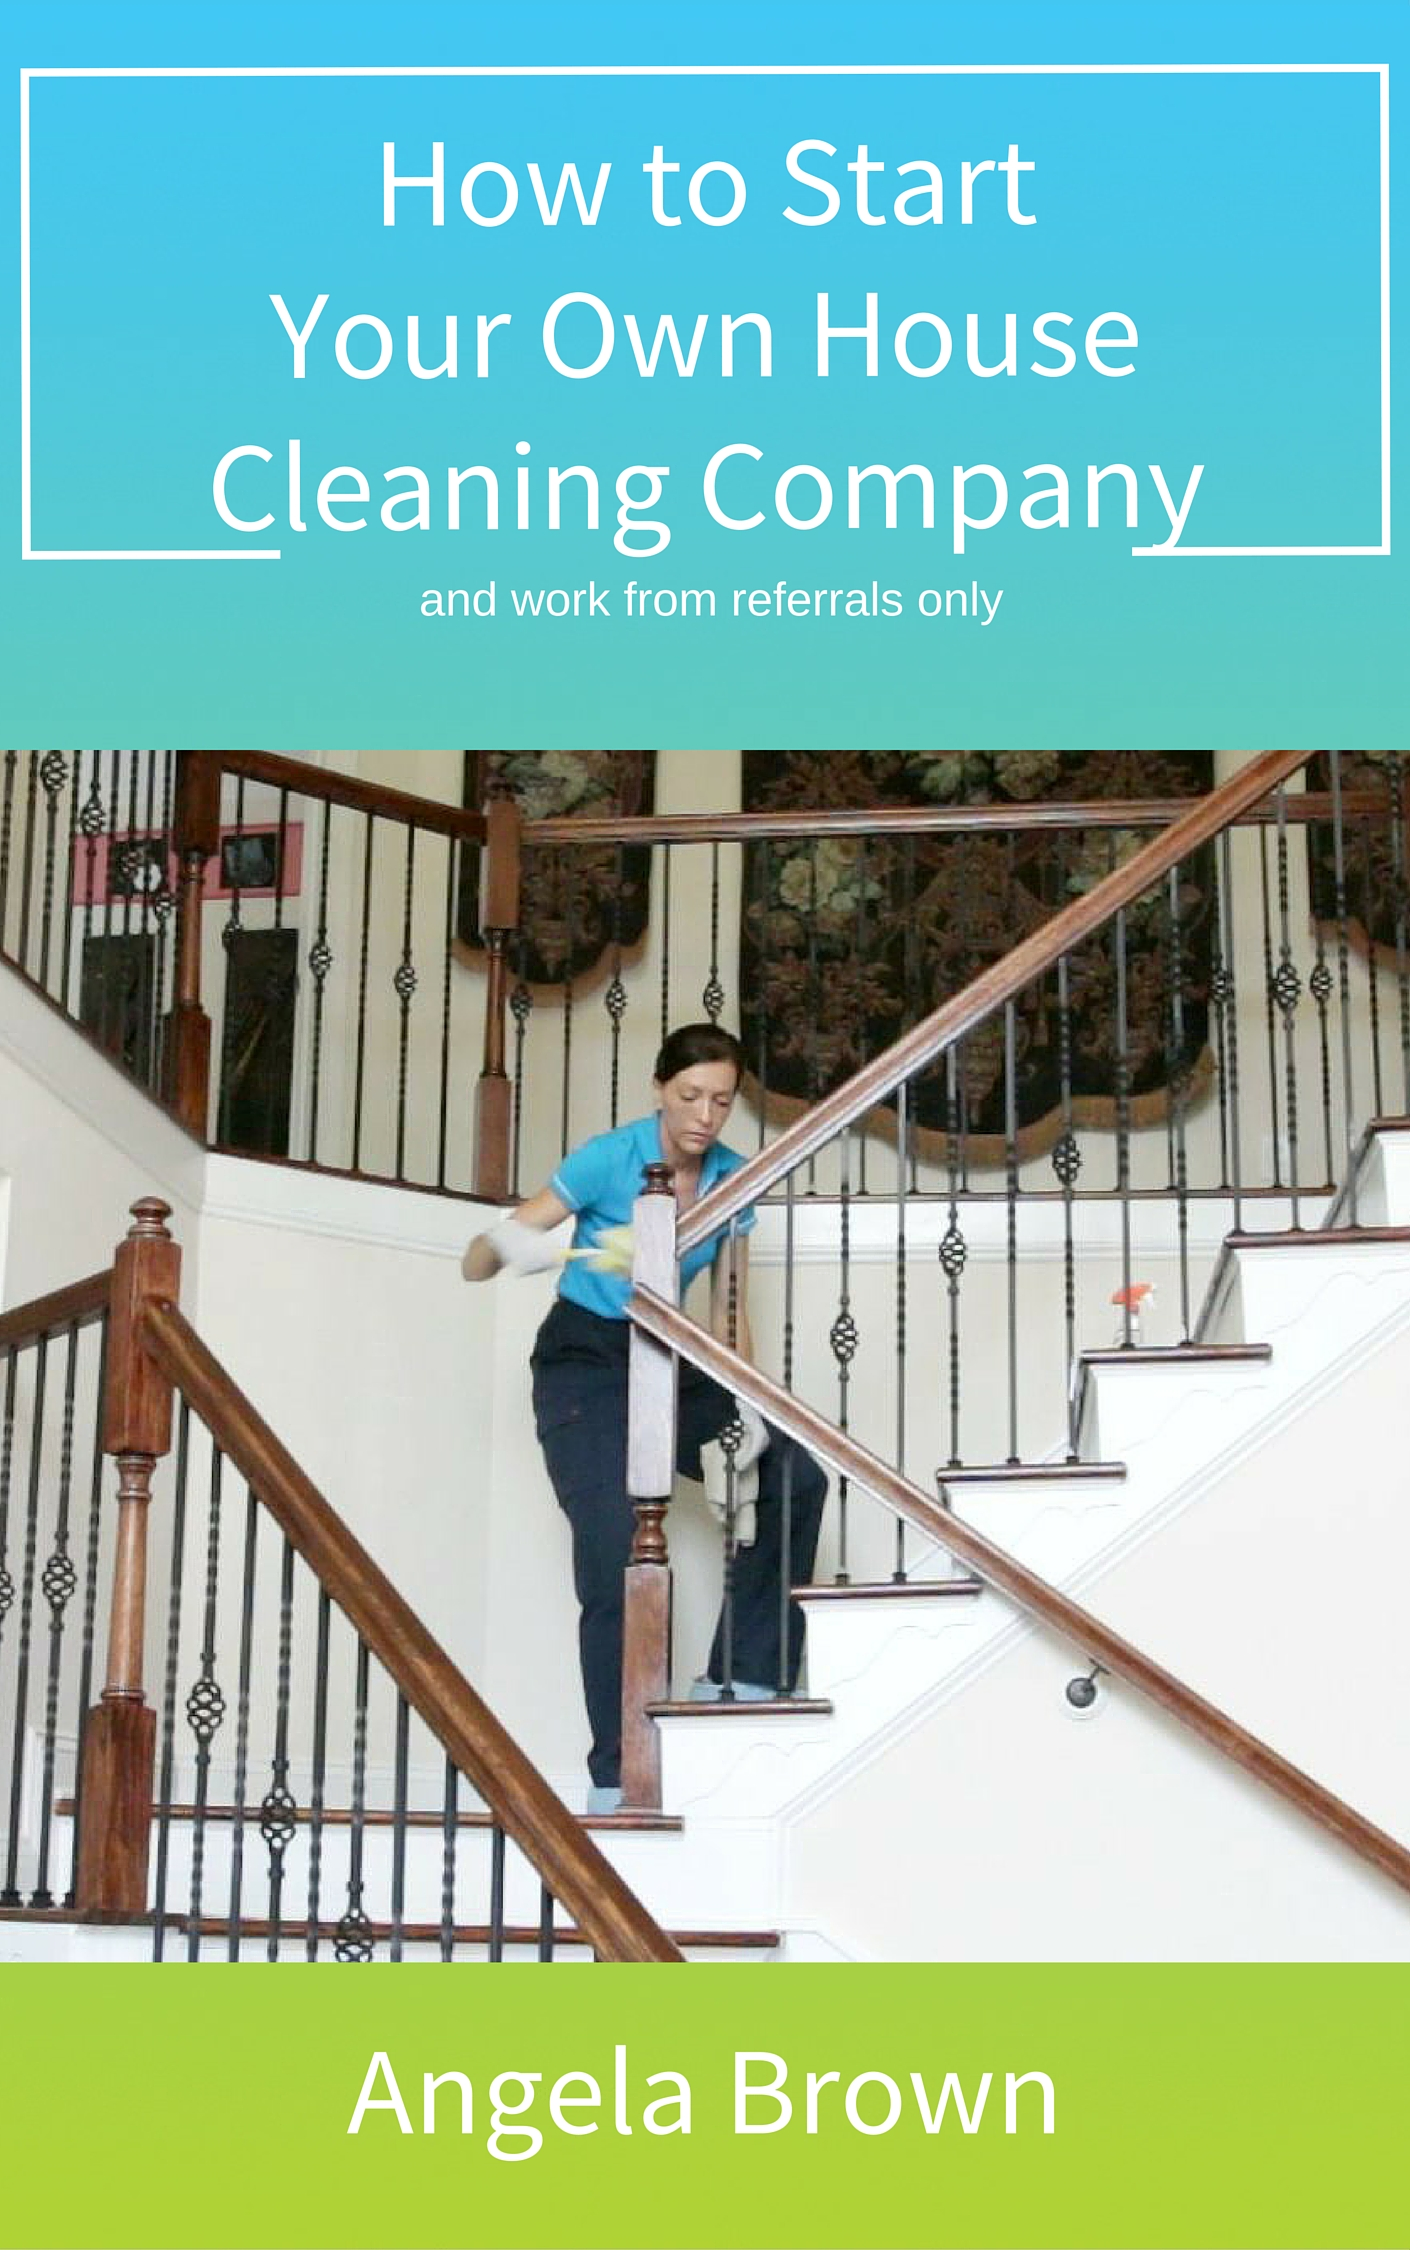 How to Start Your Own House Cleaning pany Register to Win